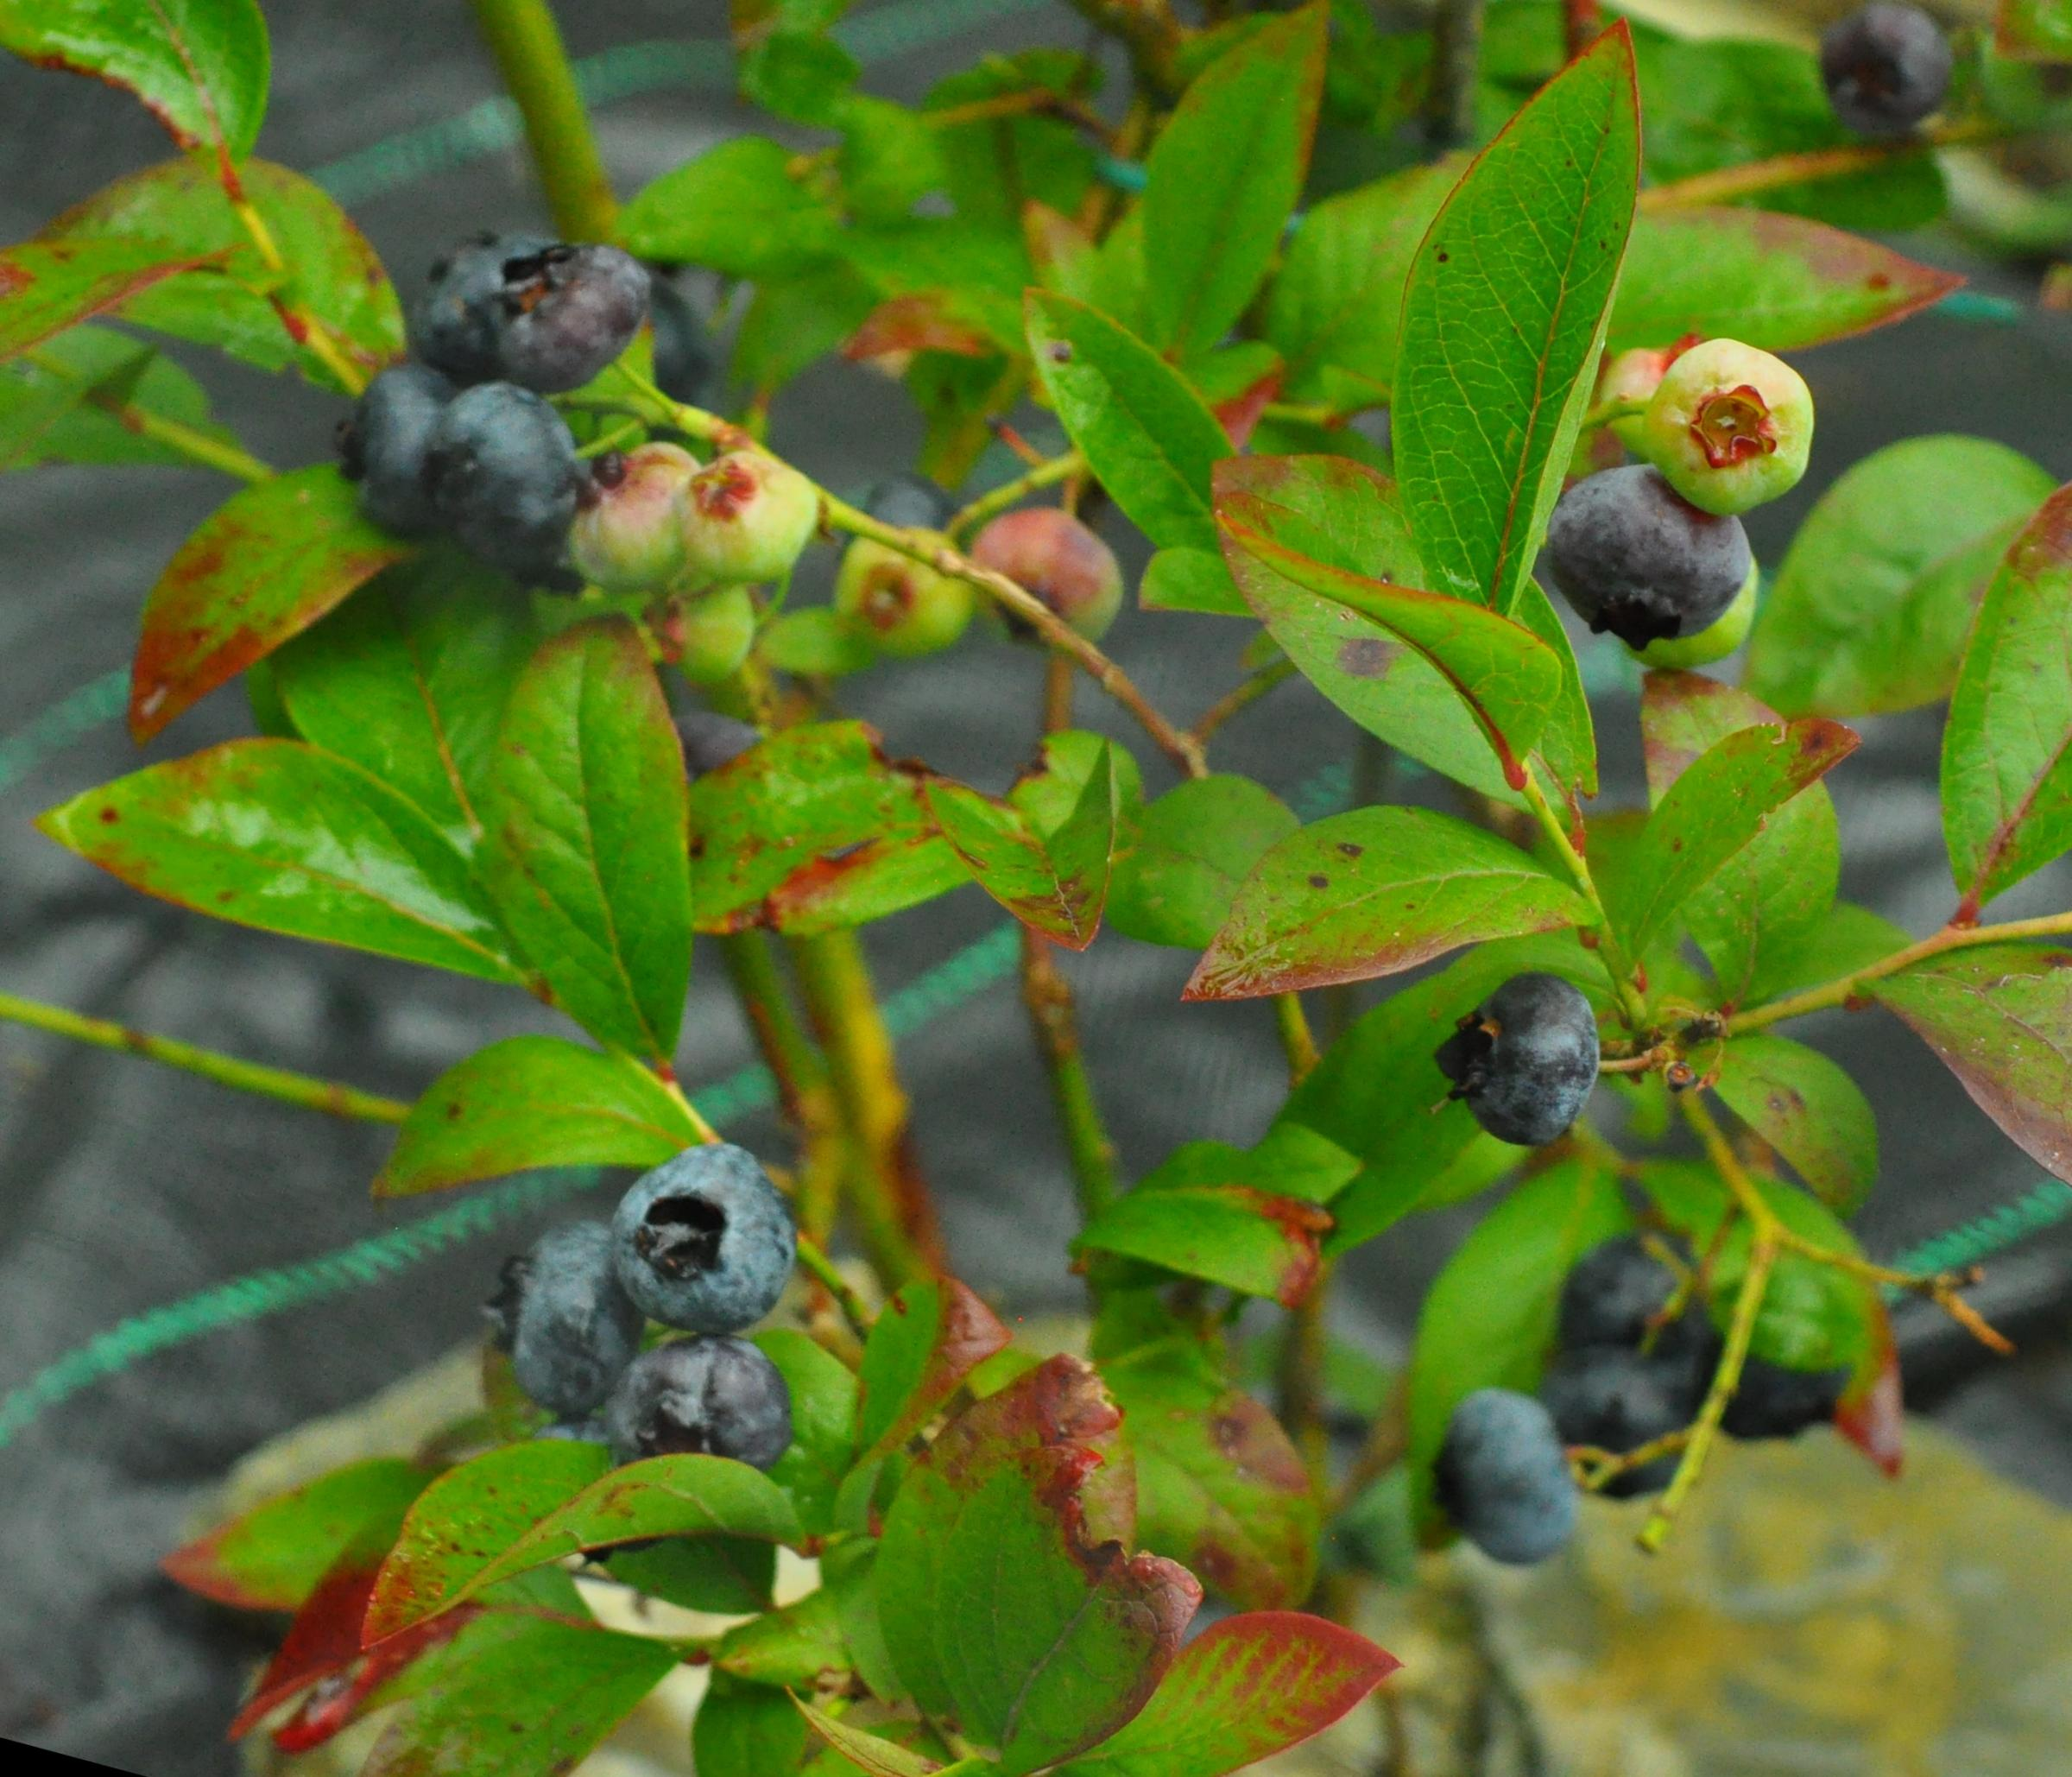 Country Life's expert guide to growing your own blueberries